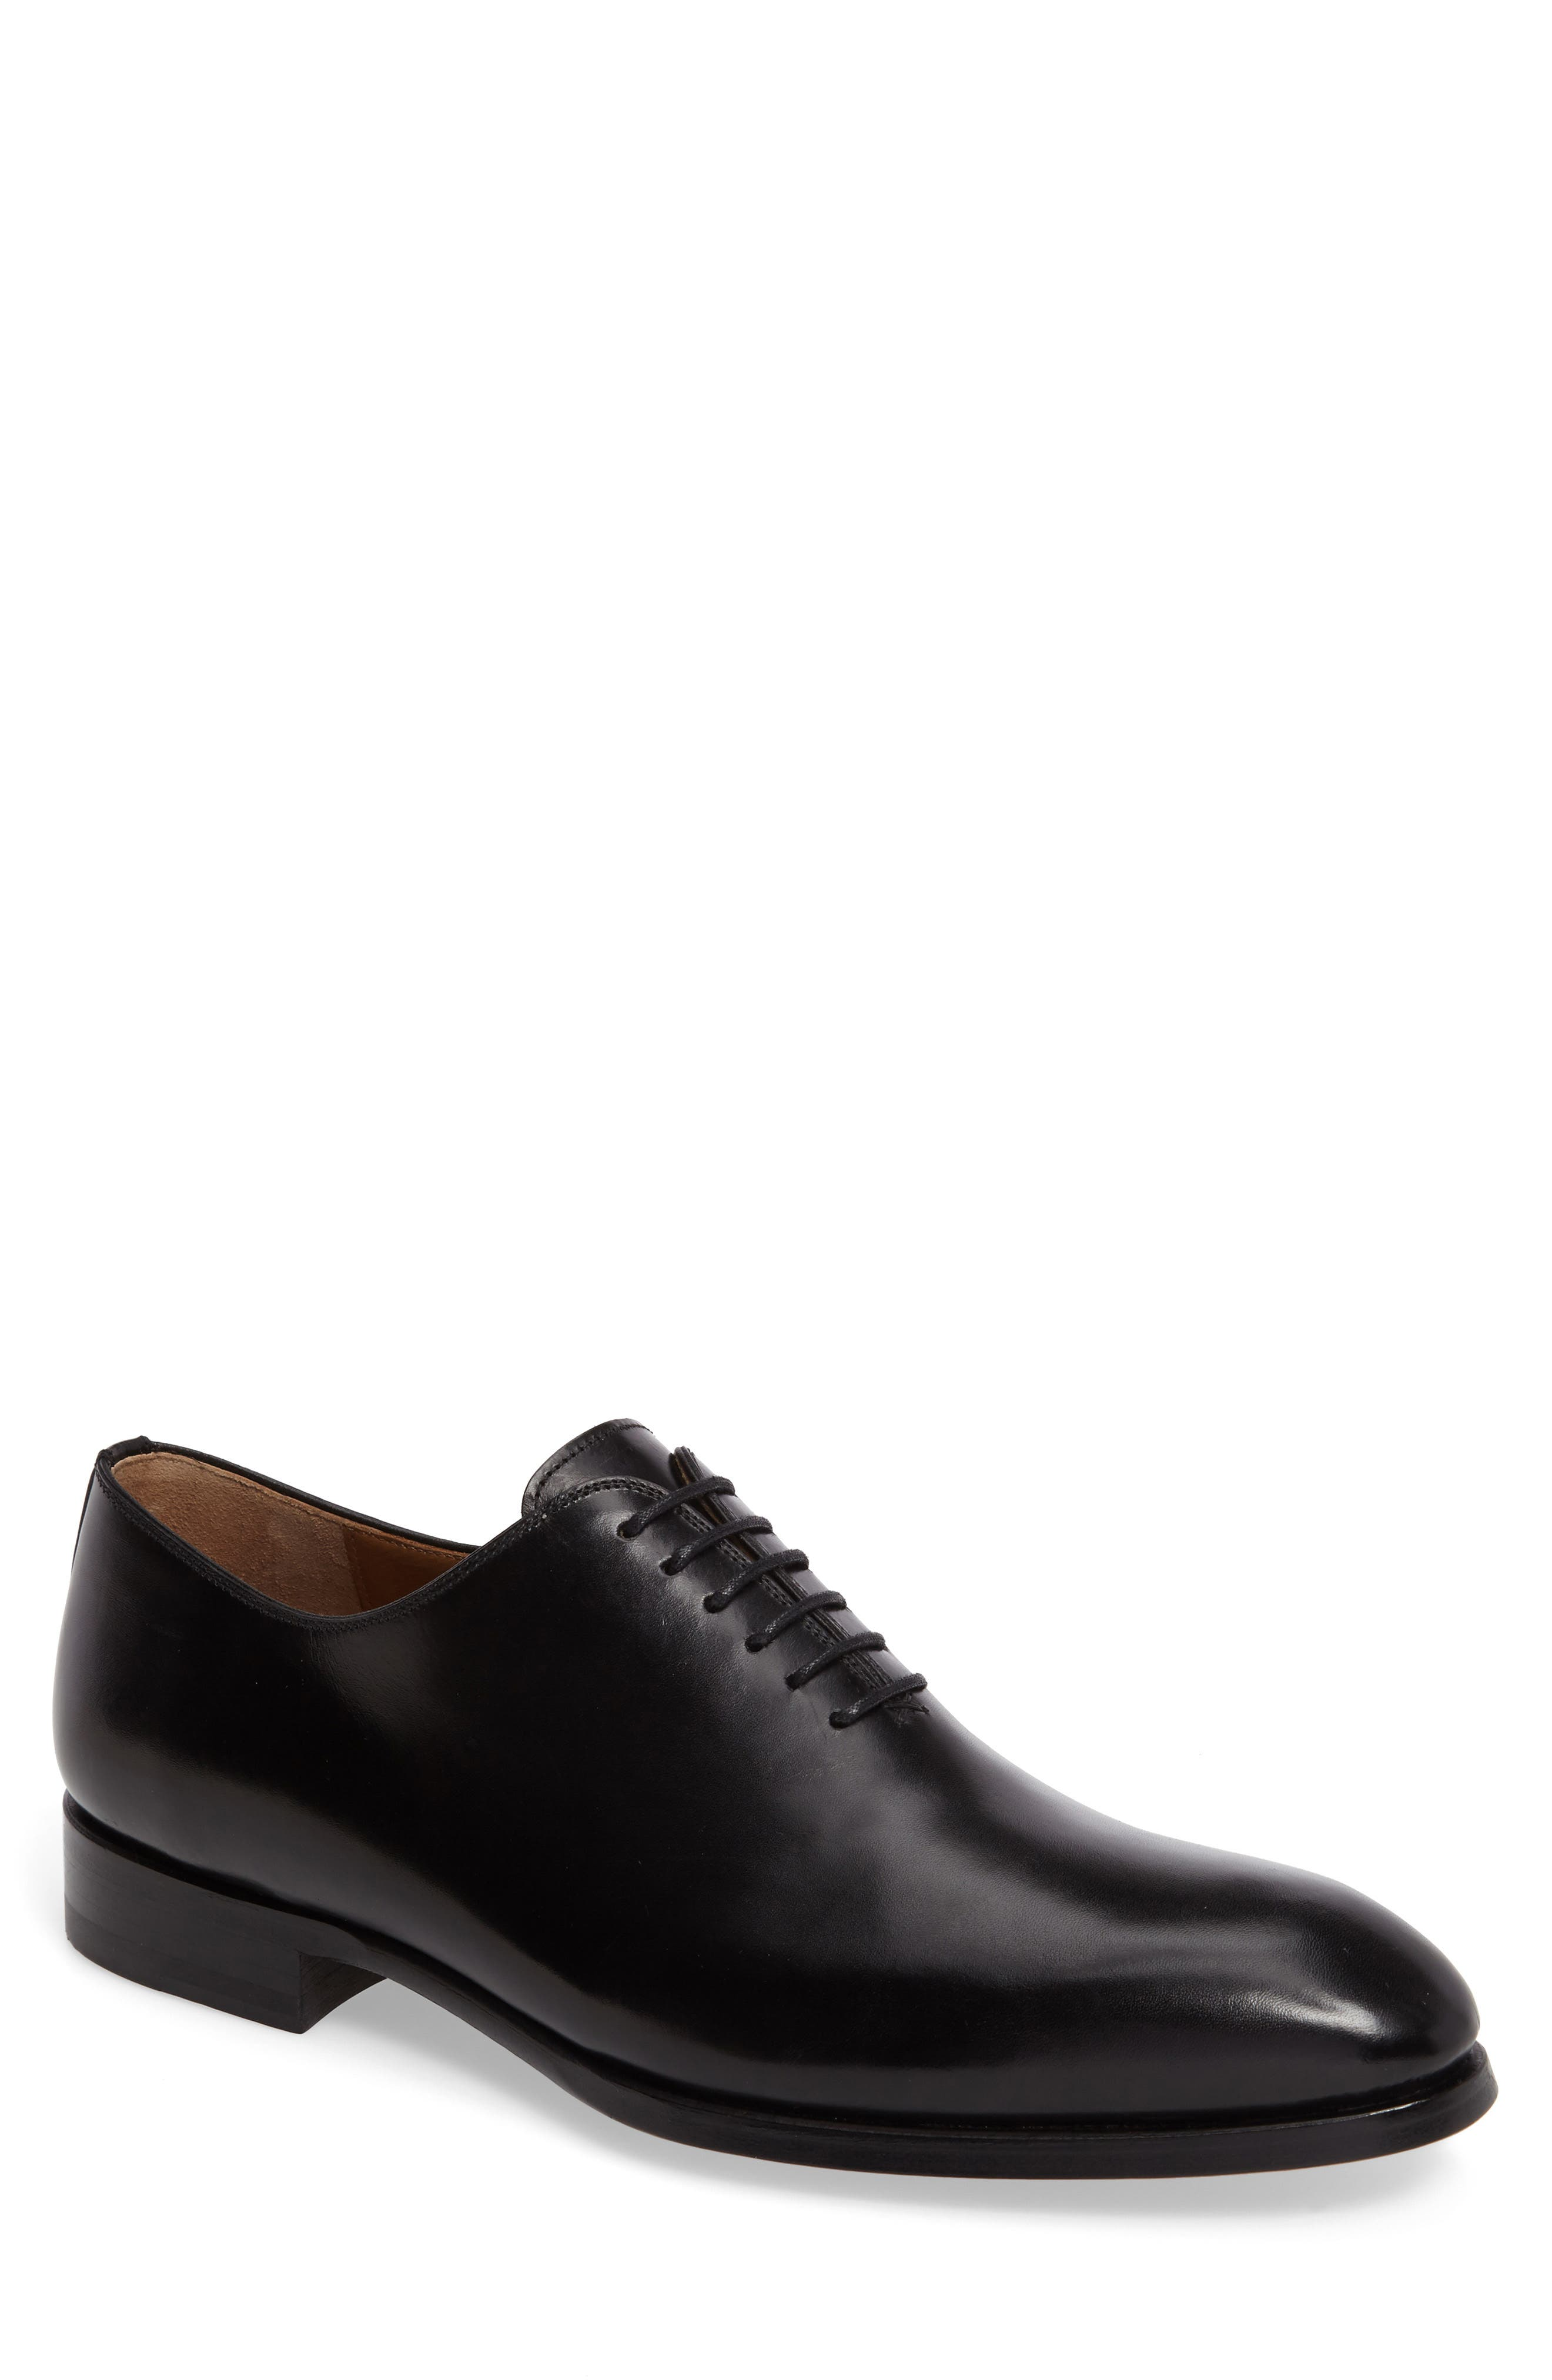 Montay Wholecut Oxford,                             Main thumbnail 1, color,                             Black Leather